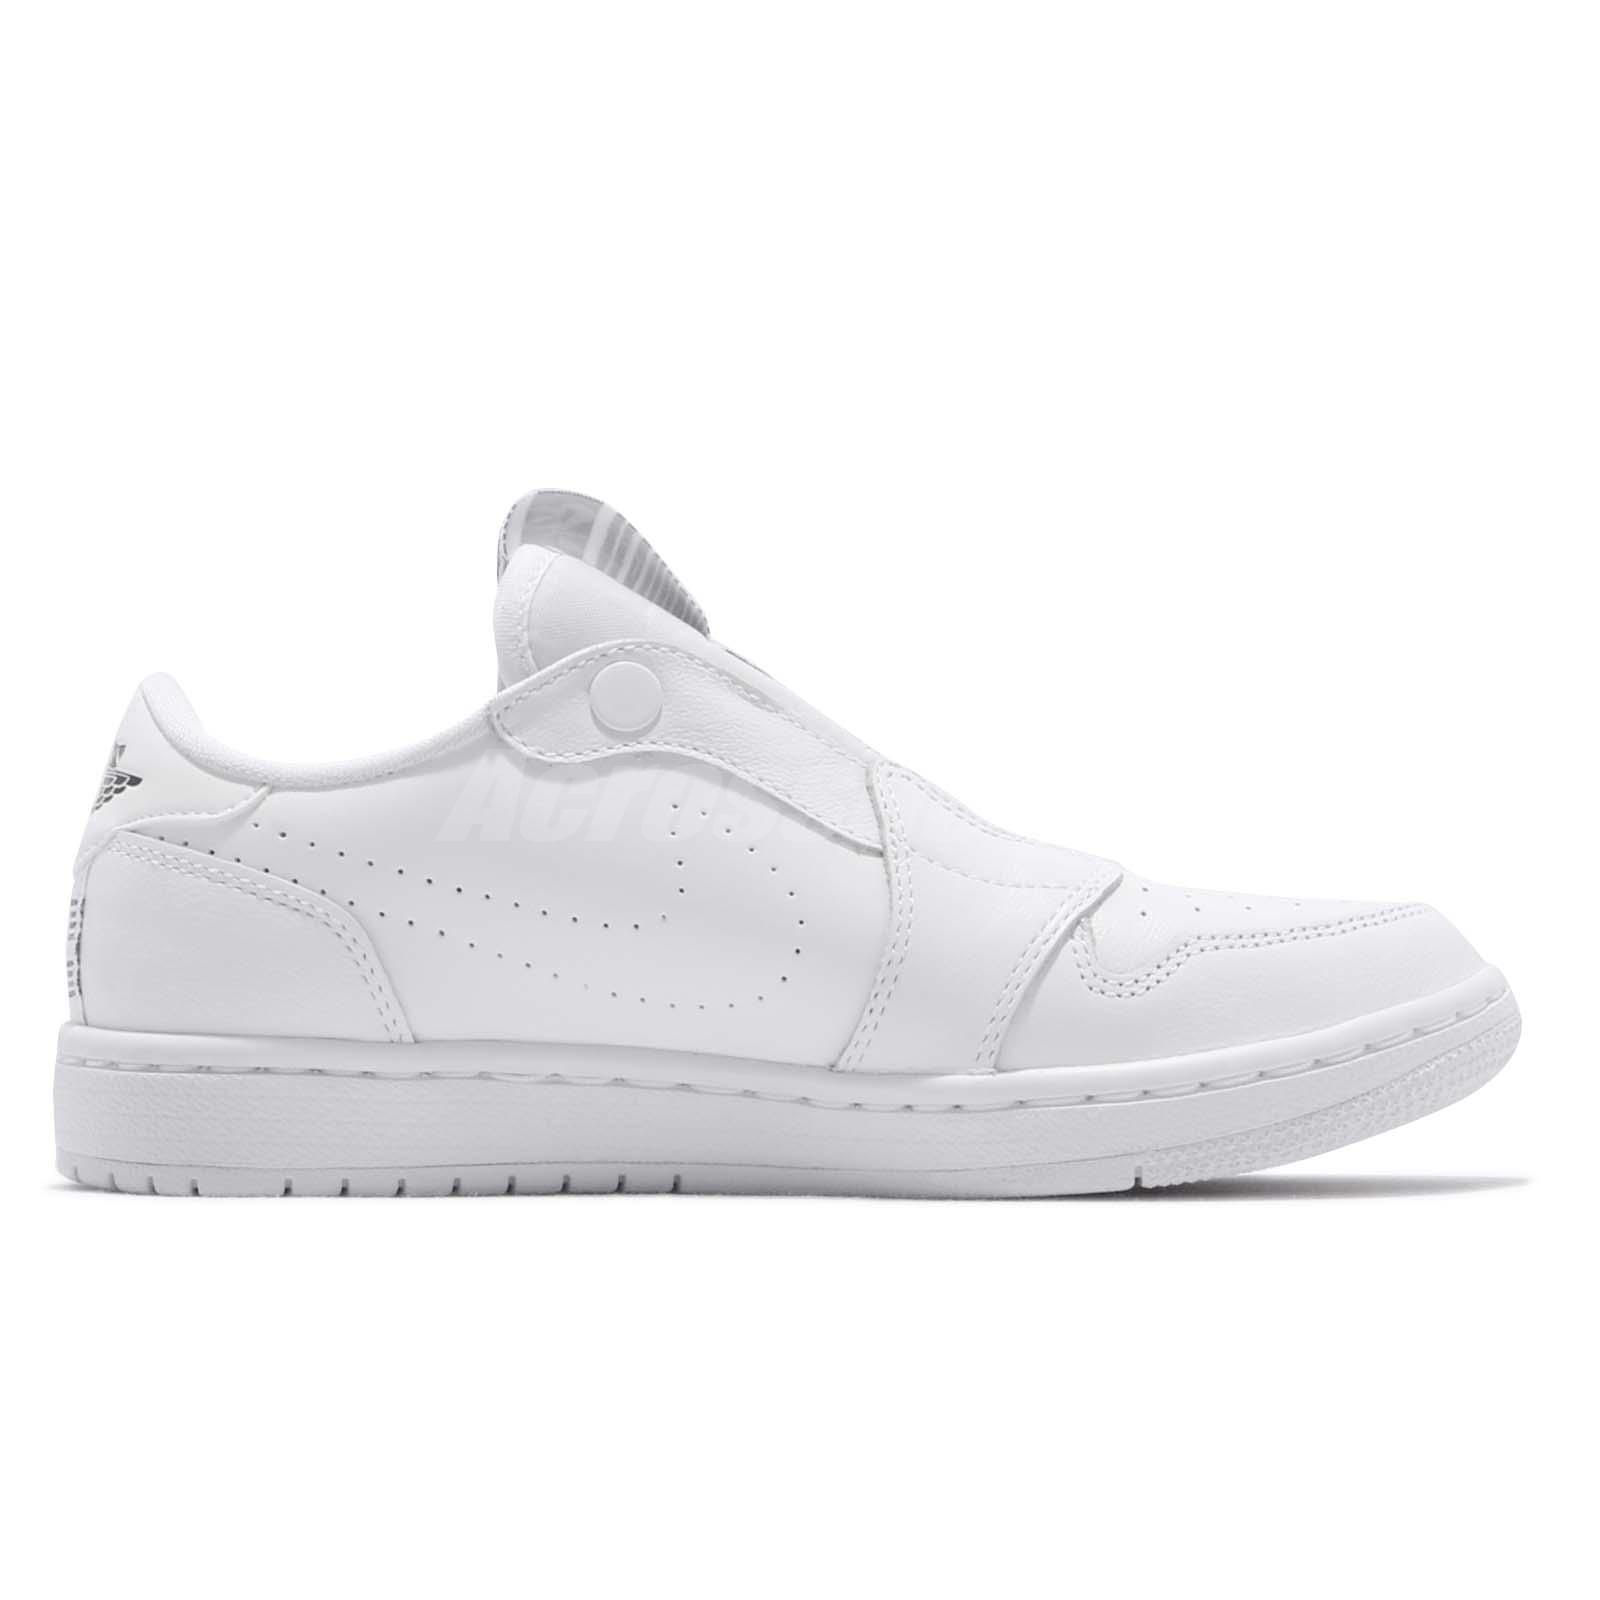 bedcf6b15243 Nike Wmns Air Jordan 1 RET Low Slip On I AJ1 White Black Women Shoes ...